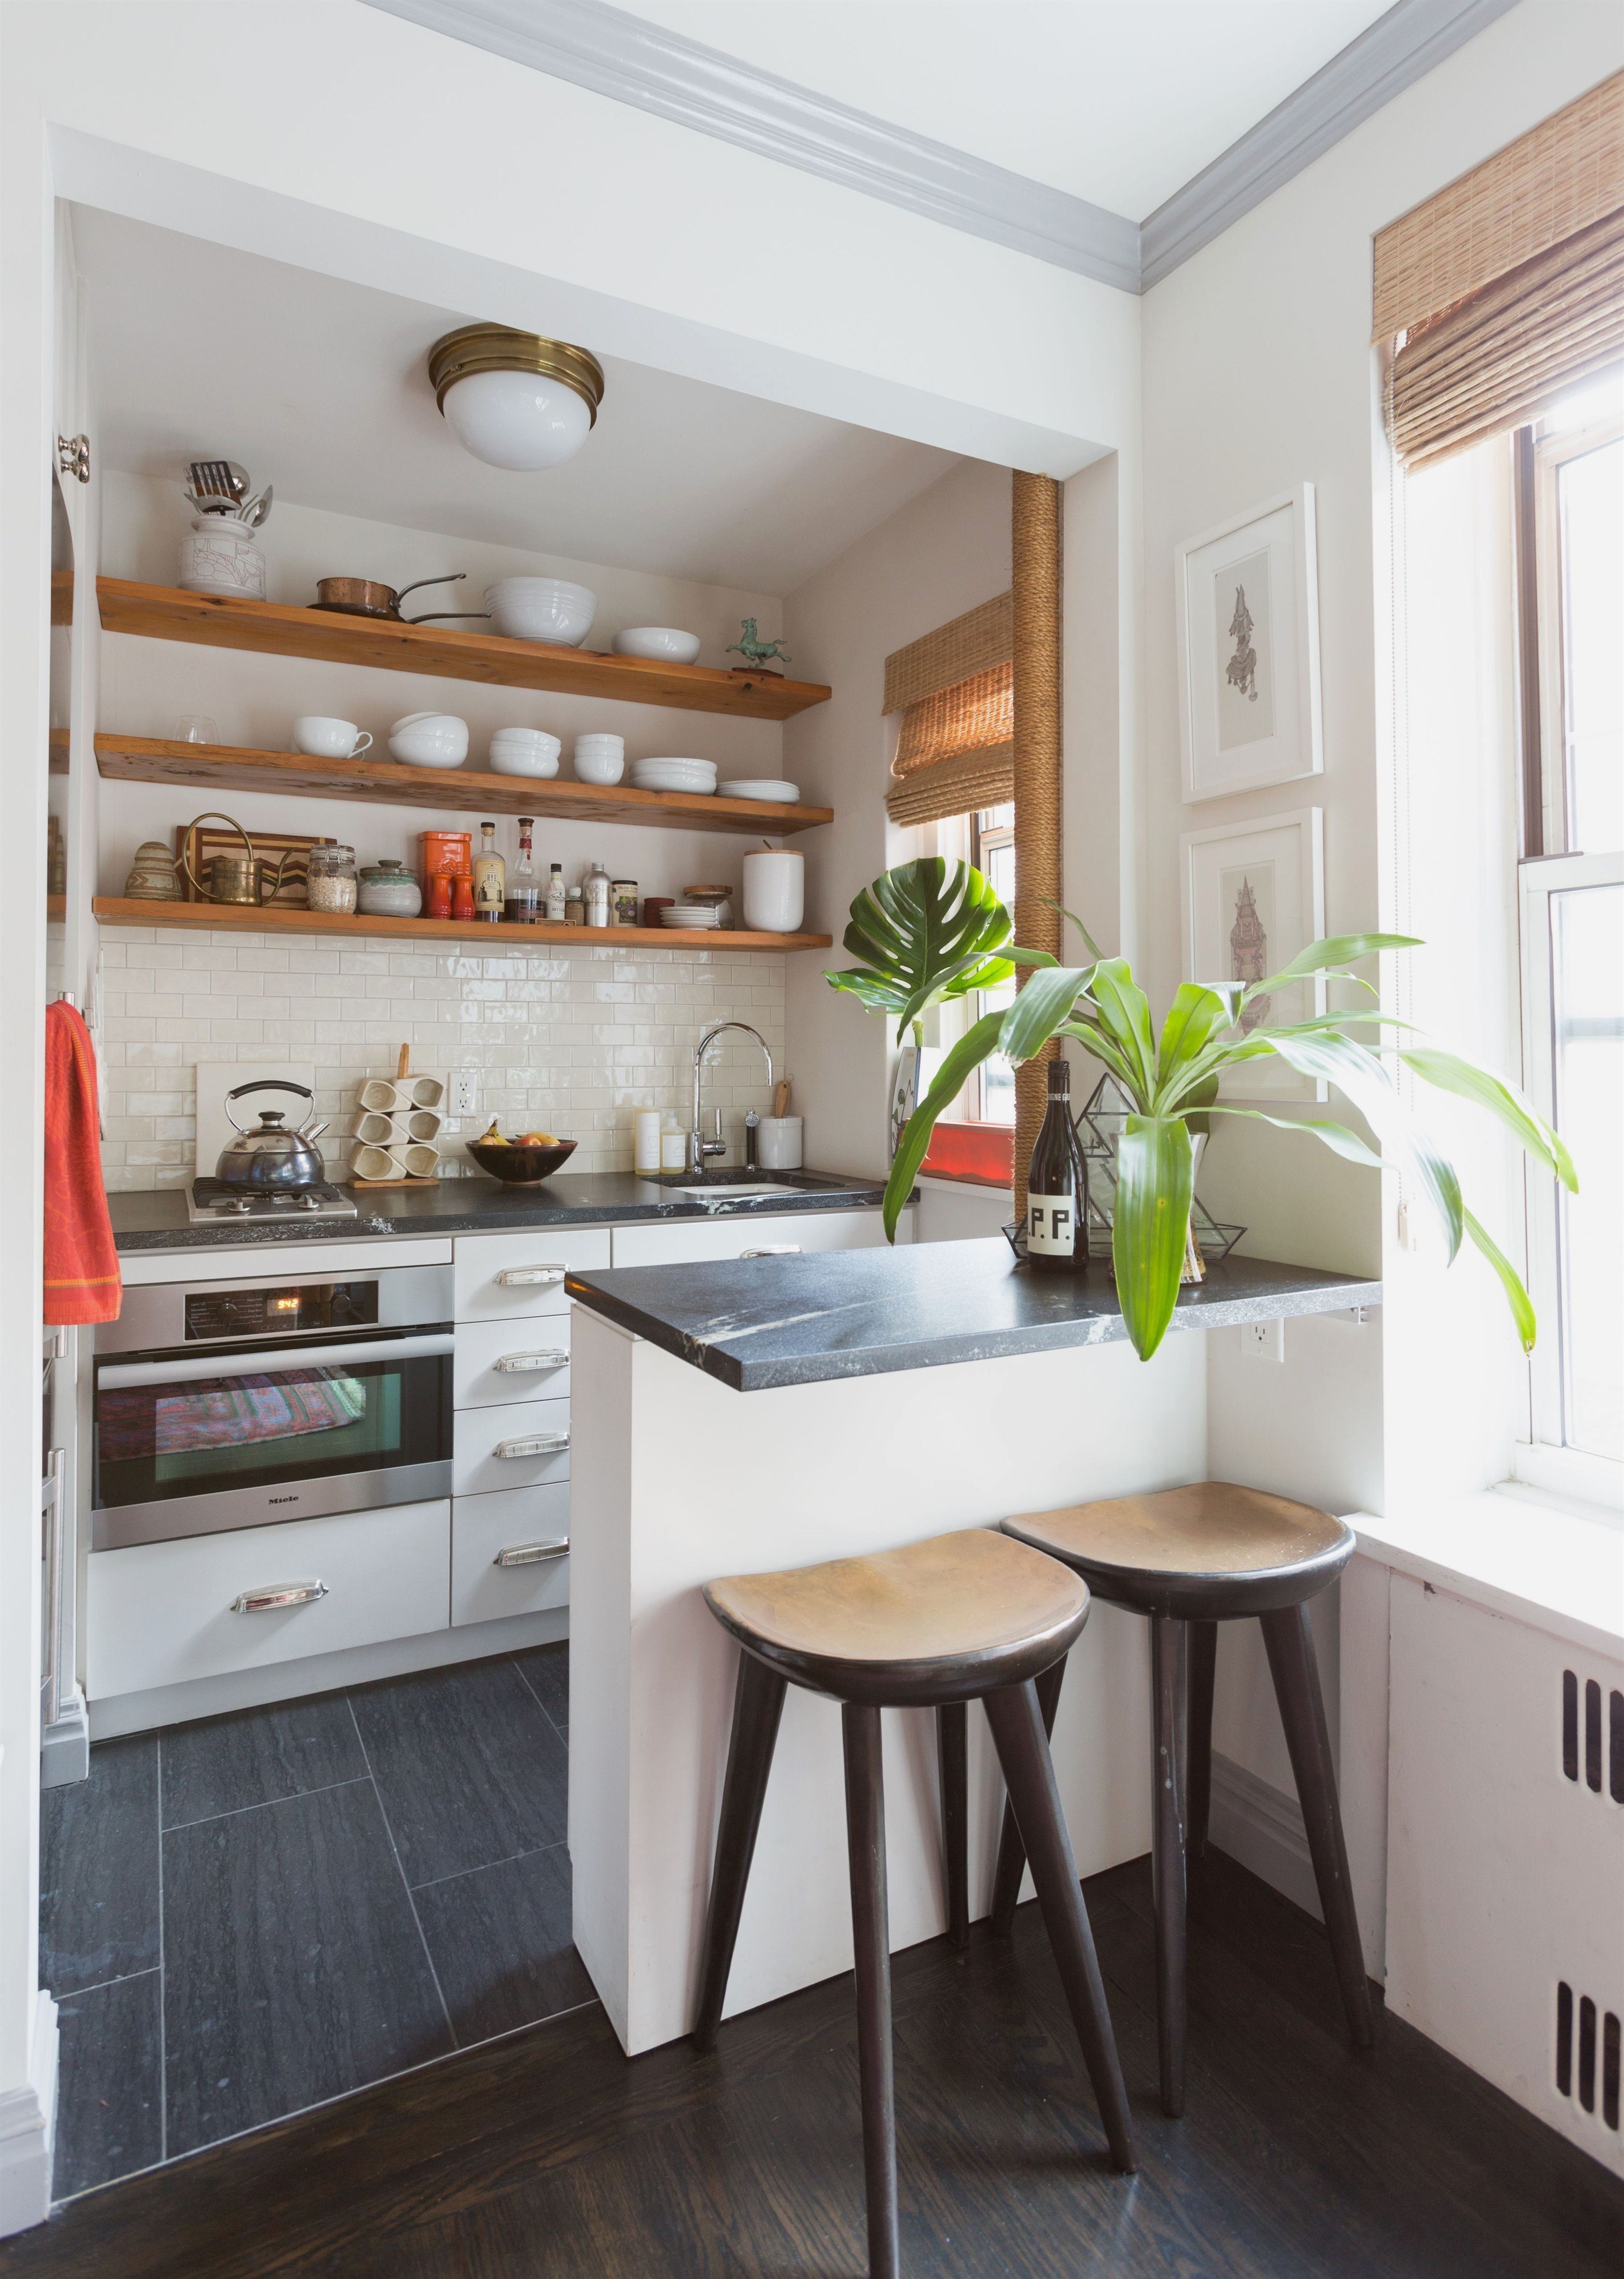 such a tiny kitchen yet the open shelving makes it feel on awesome modern kitchen design ideas id=18908